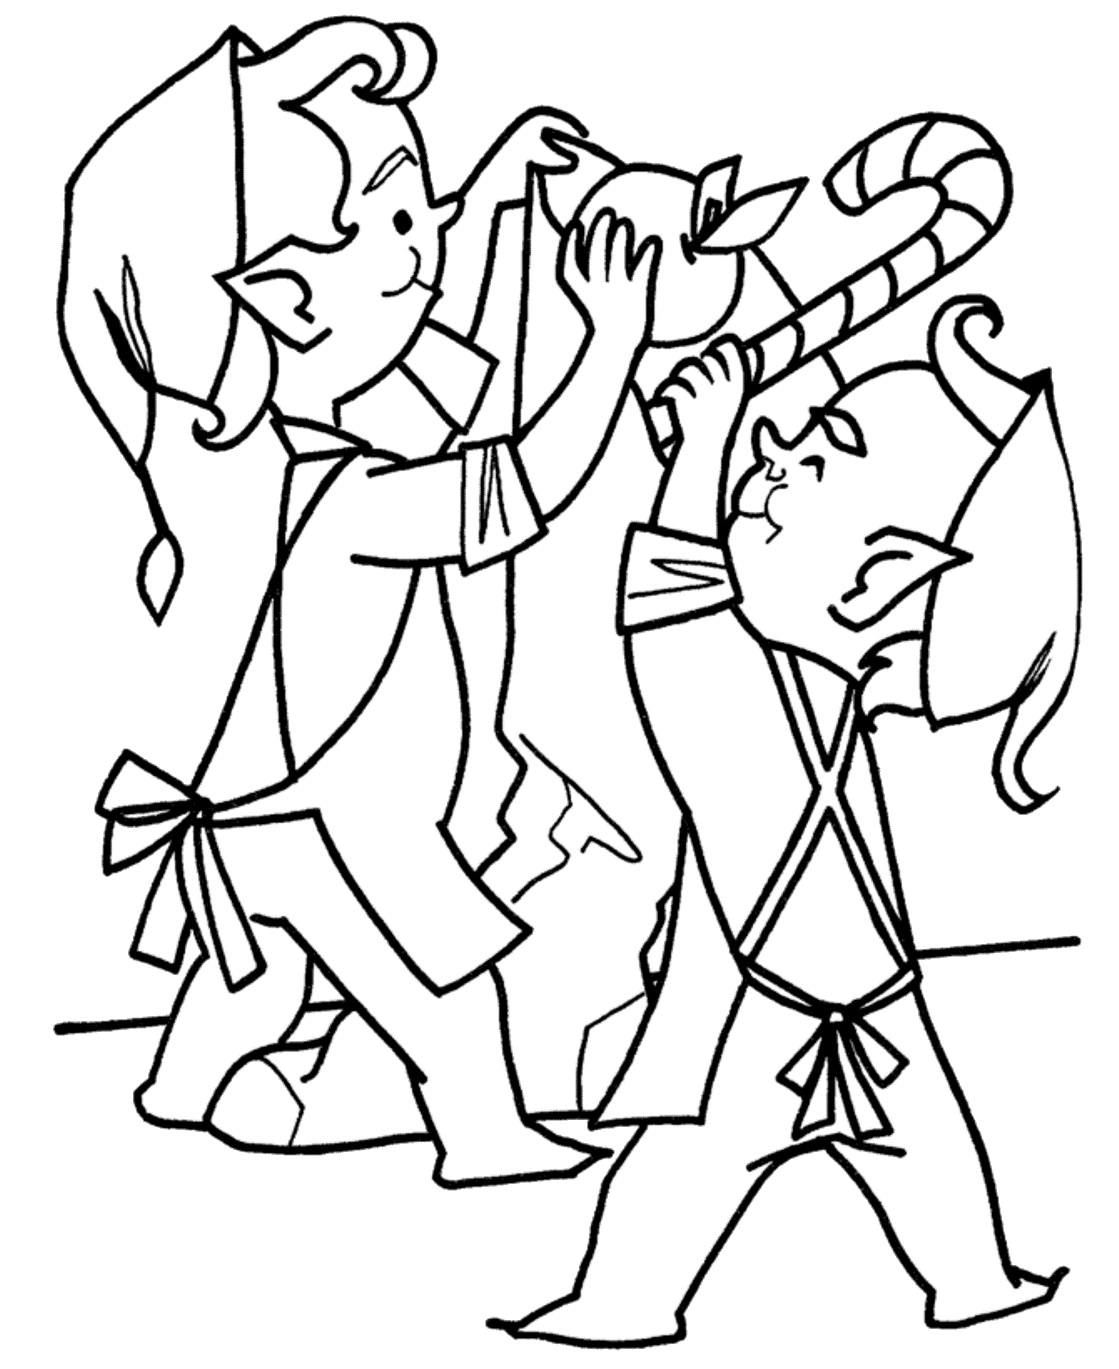 coloring page kids for fantasy image